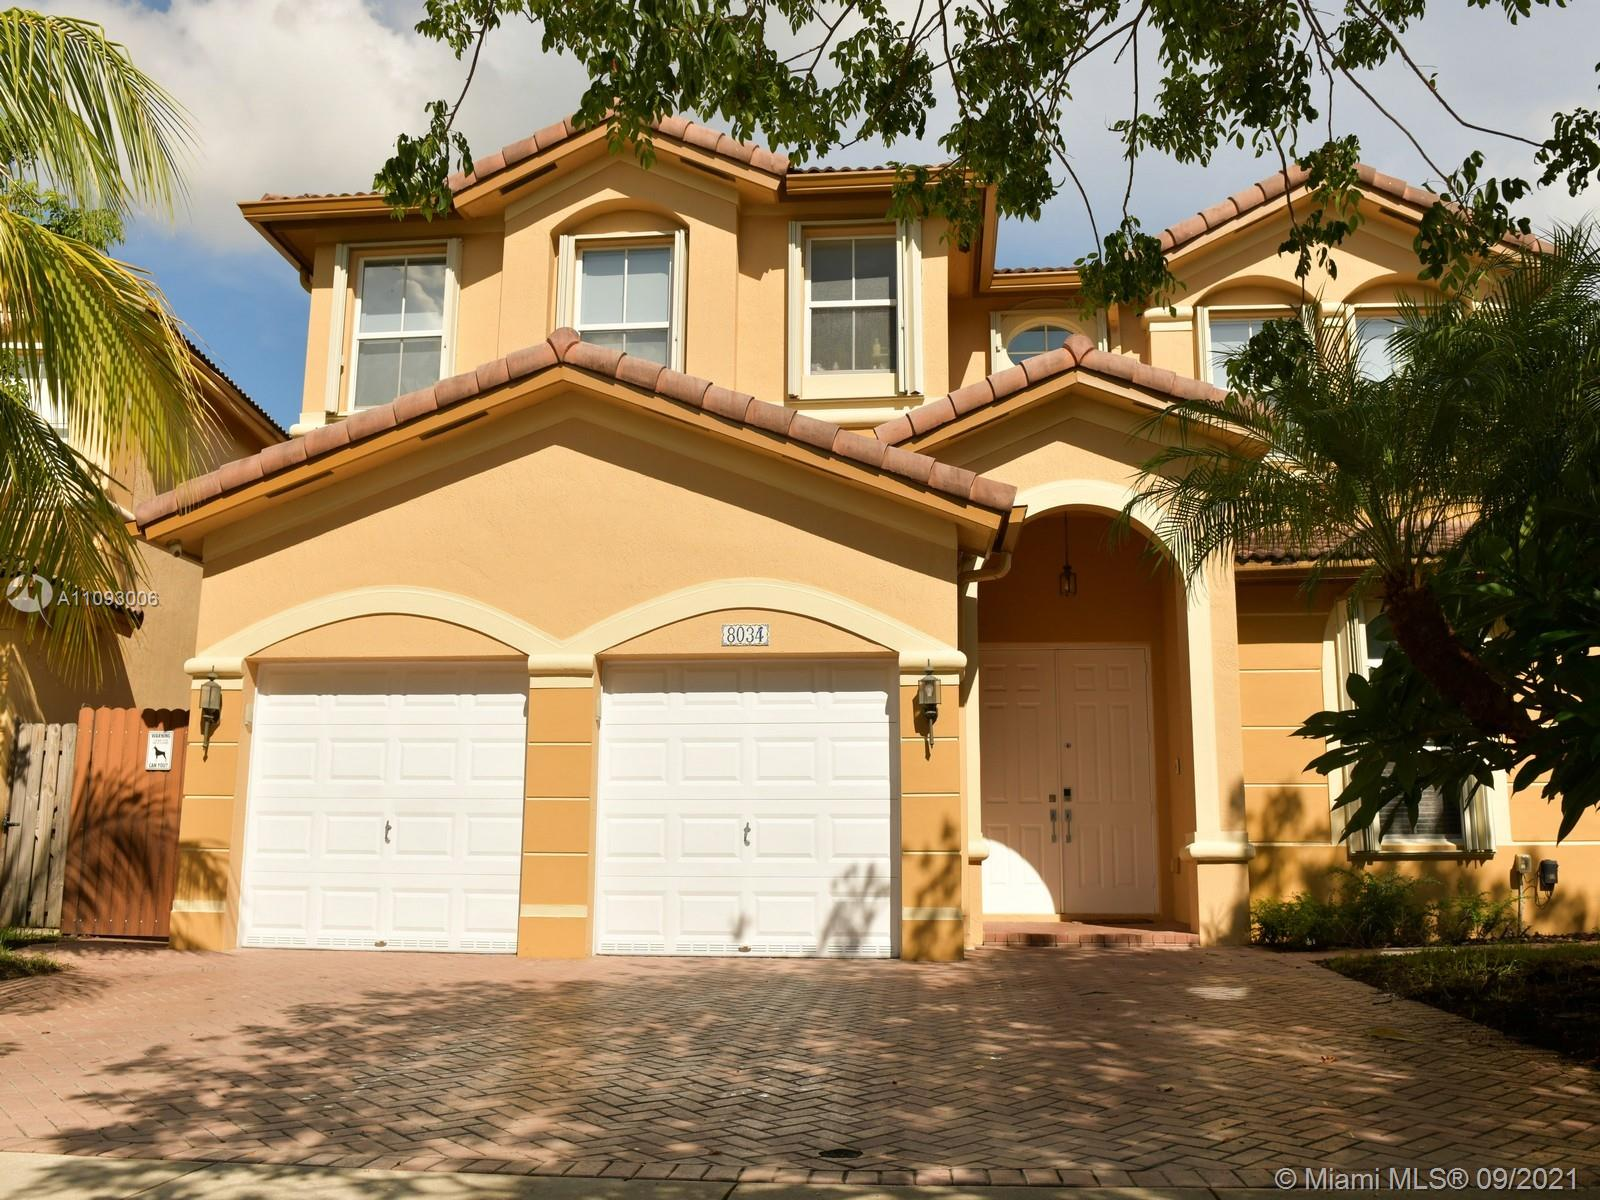 Islands At Doral - 8034 NW 111th Ct, Doral, FL 33178